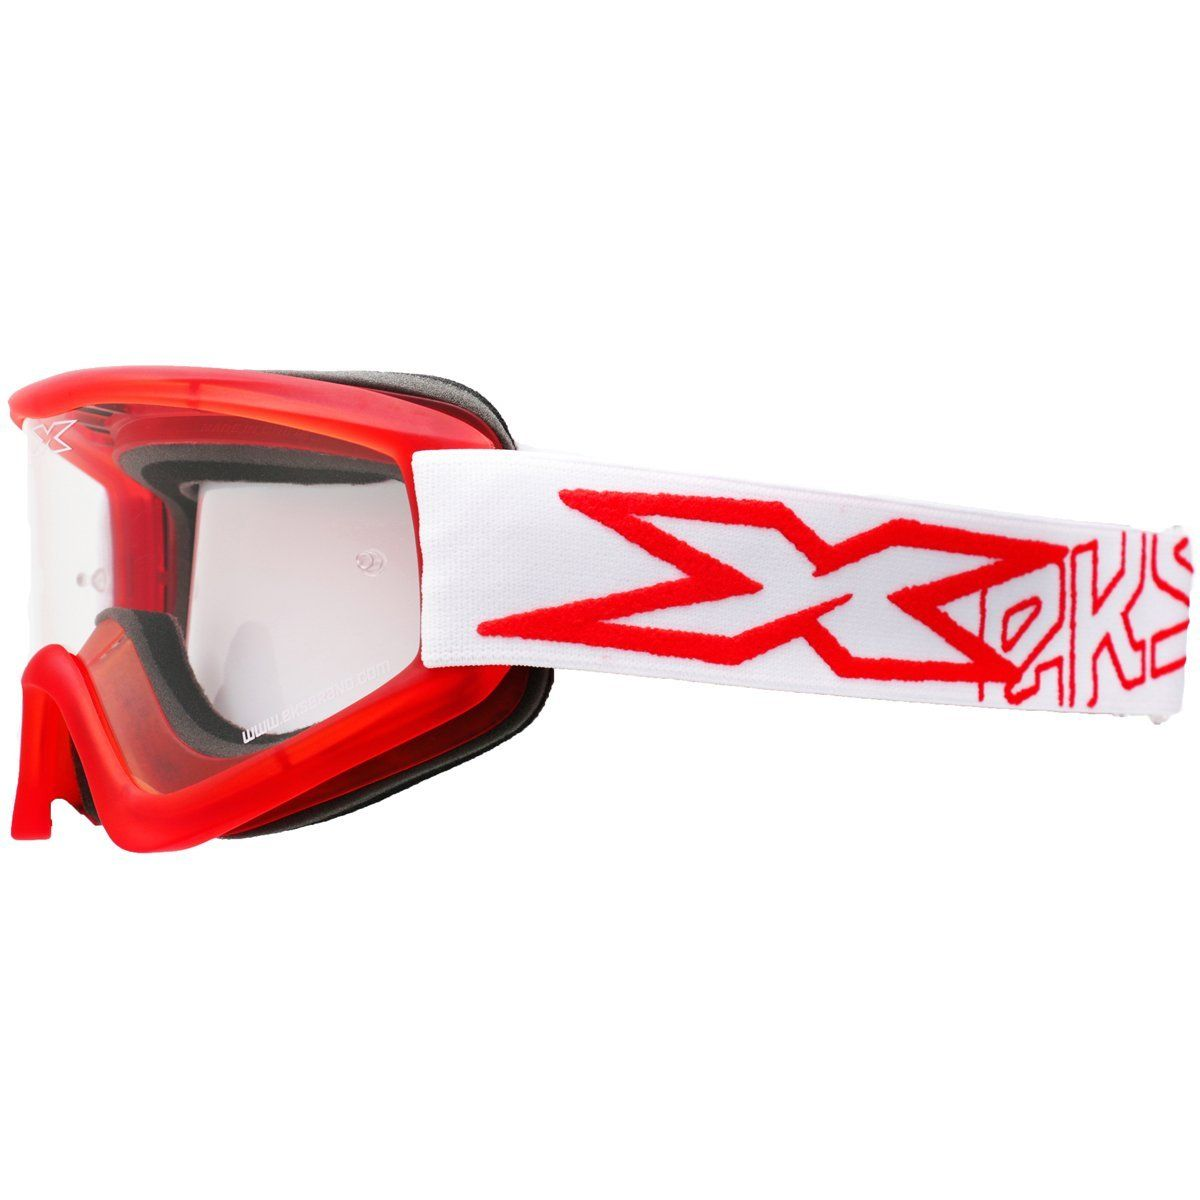 EKS Flat Out Motorcycle Goggles Mens Red//White With Clear Lens